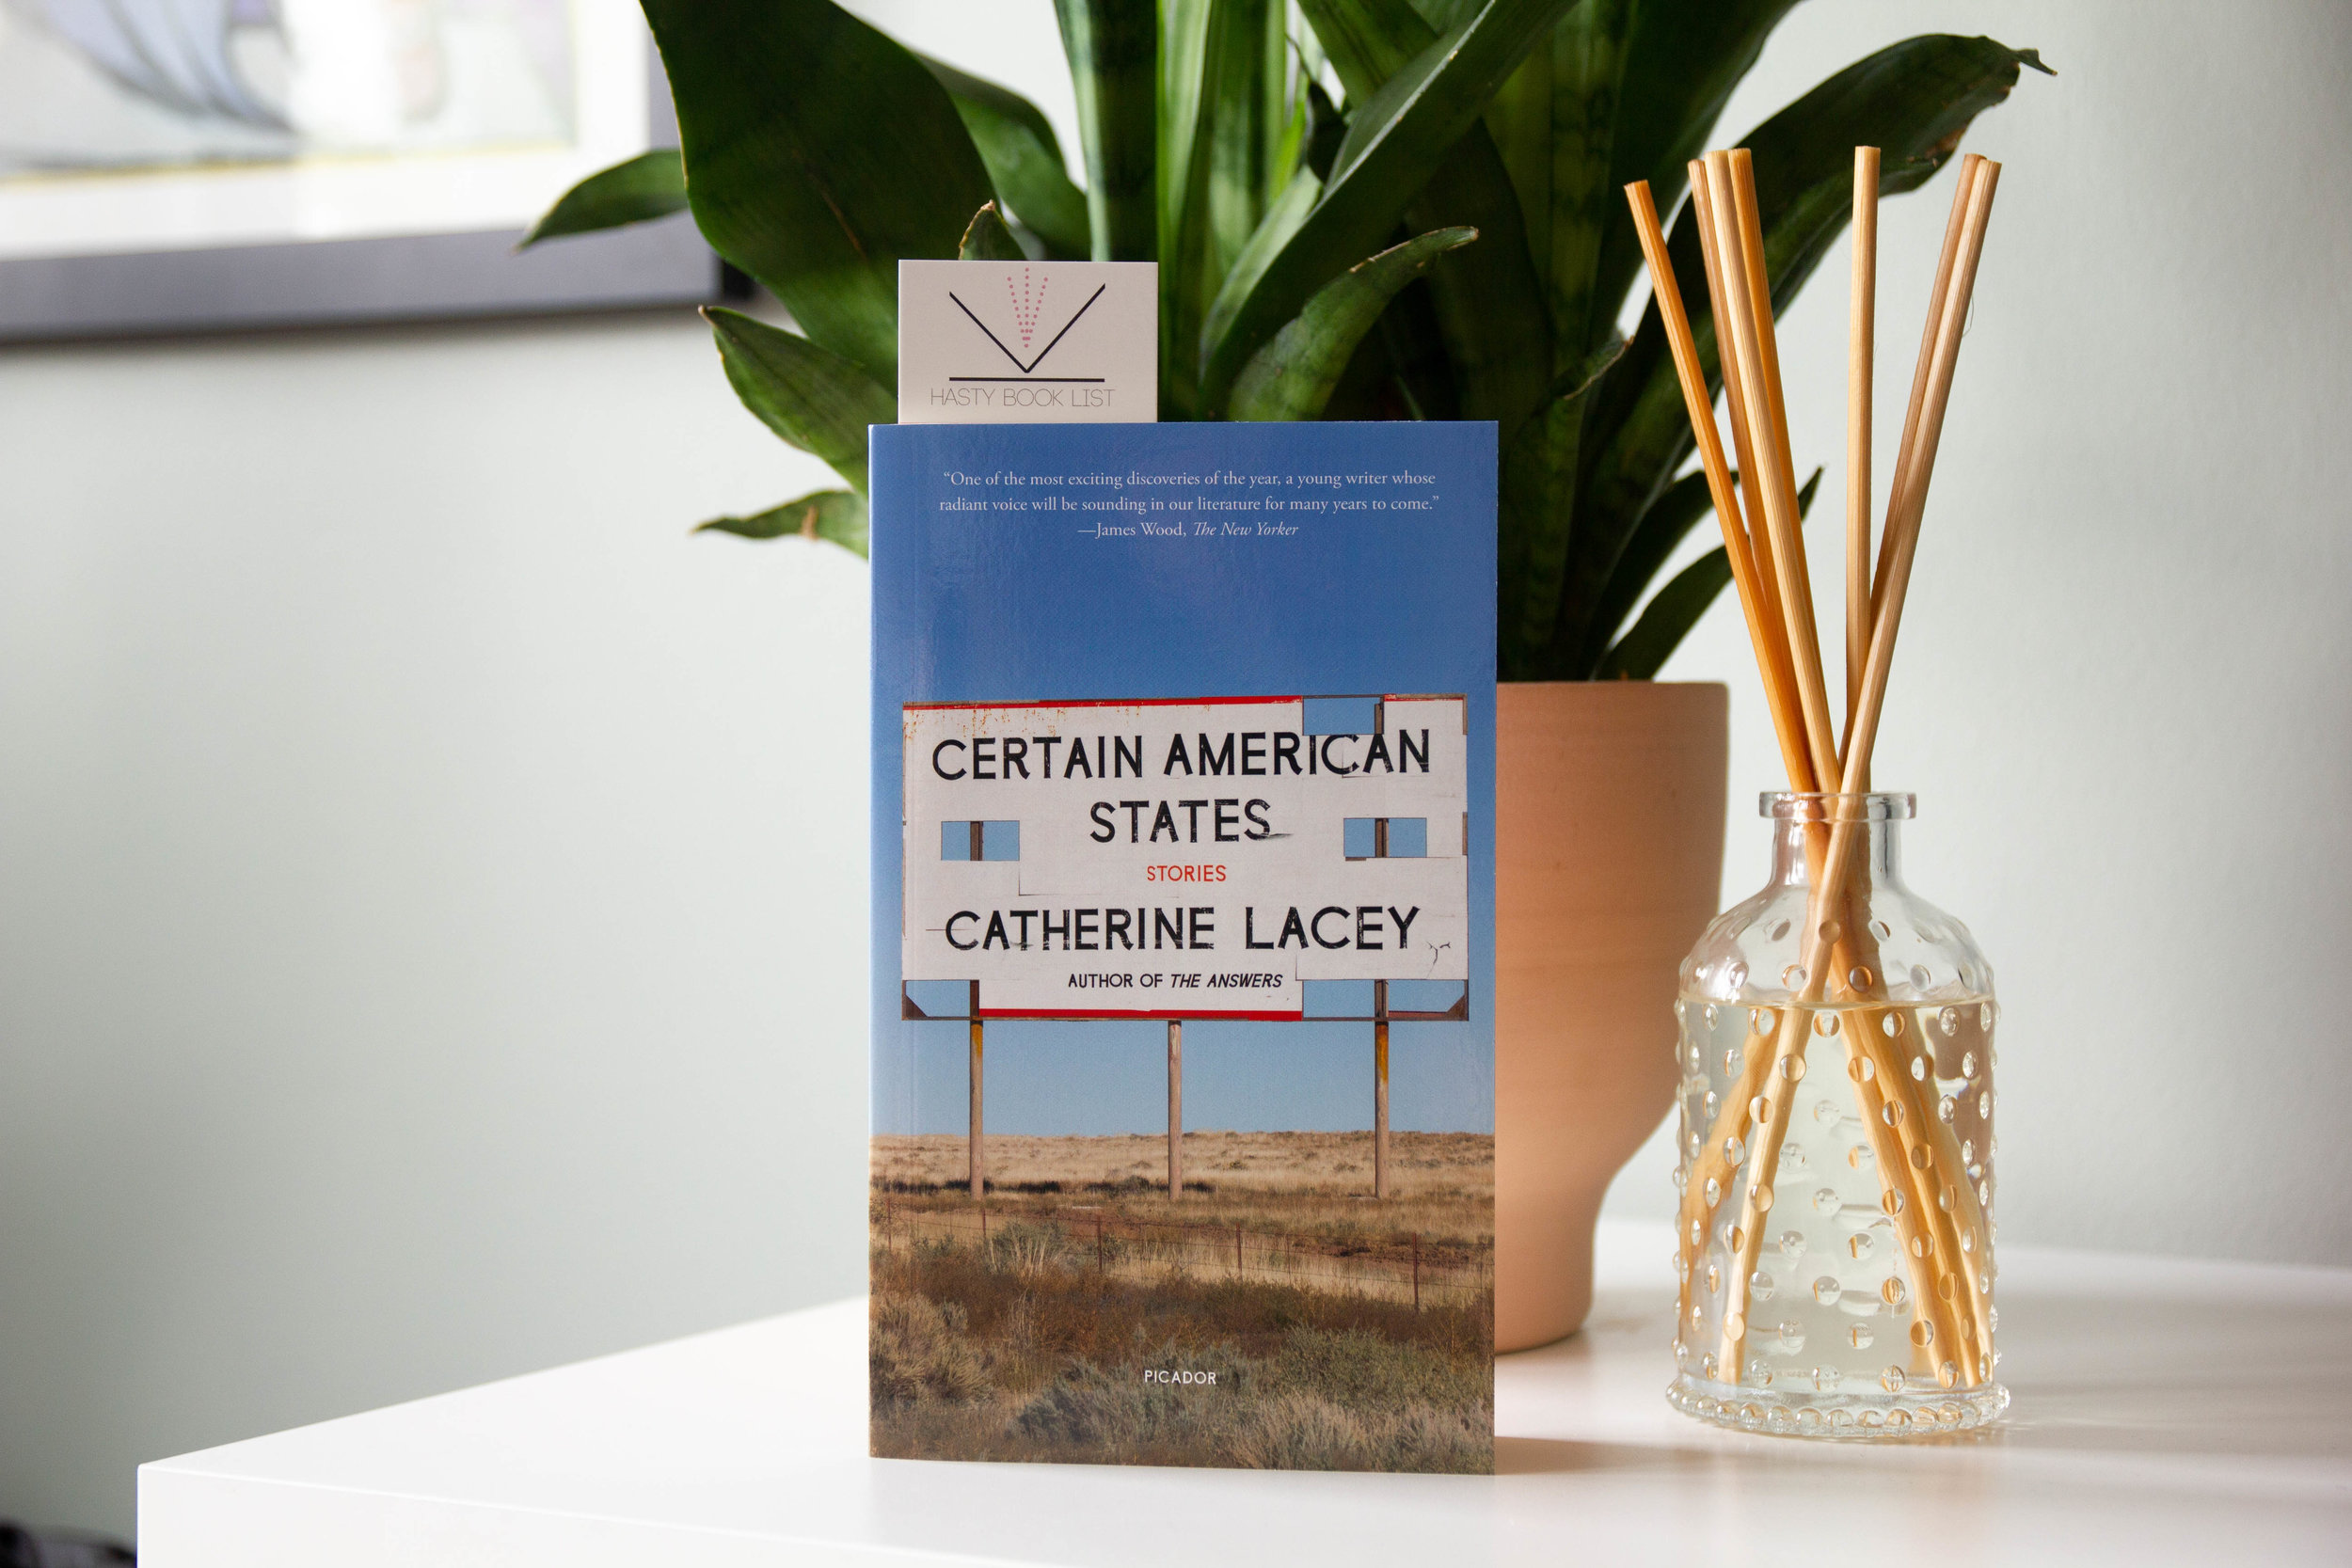 Certain American States by Catherine Lacey - One of Granta's Best Young American novelists, Catherine Lacey, the Whiting Award-winning author of The Answers, showcases her literary style in short fiction with Certain American States, a collection of stories about ordinary people seeking―and failing to find―the extraordinary in their lives.